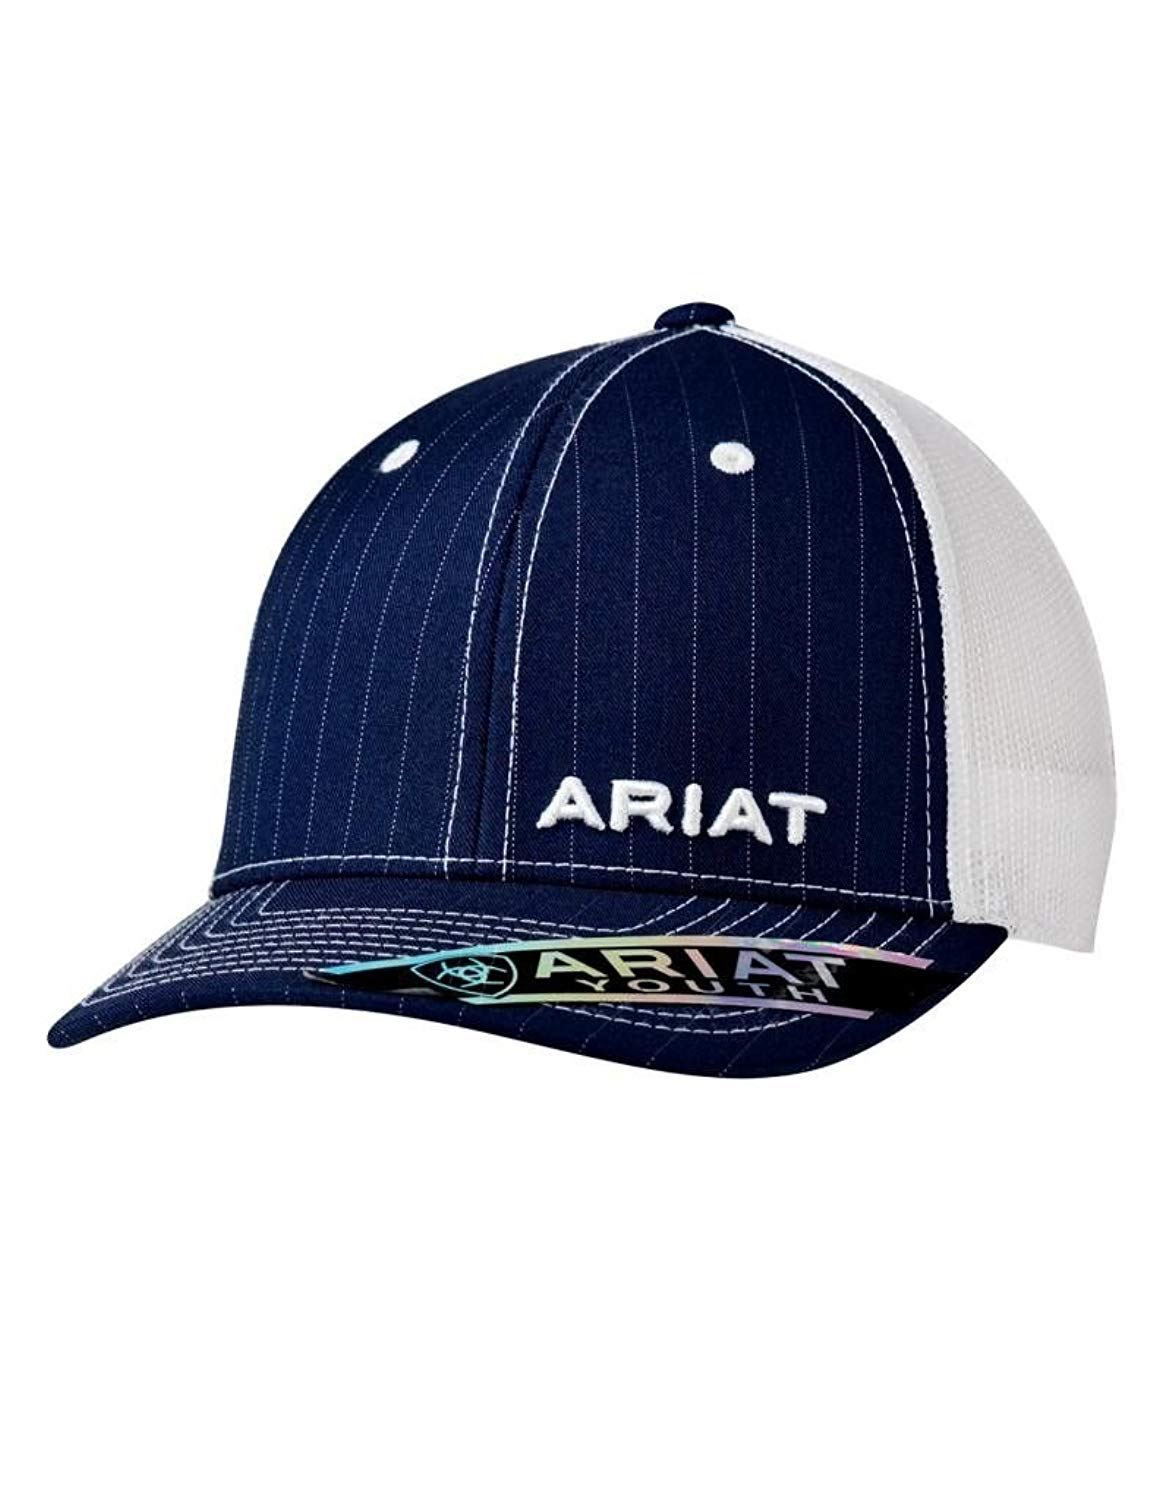 0563ae0ed4eb2 Get Quotations · Ariat Kid s Youth Offset Pinstripe Cap